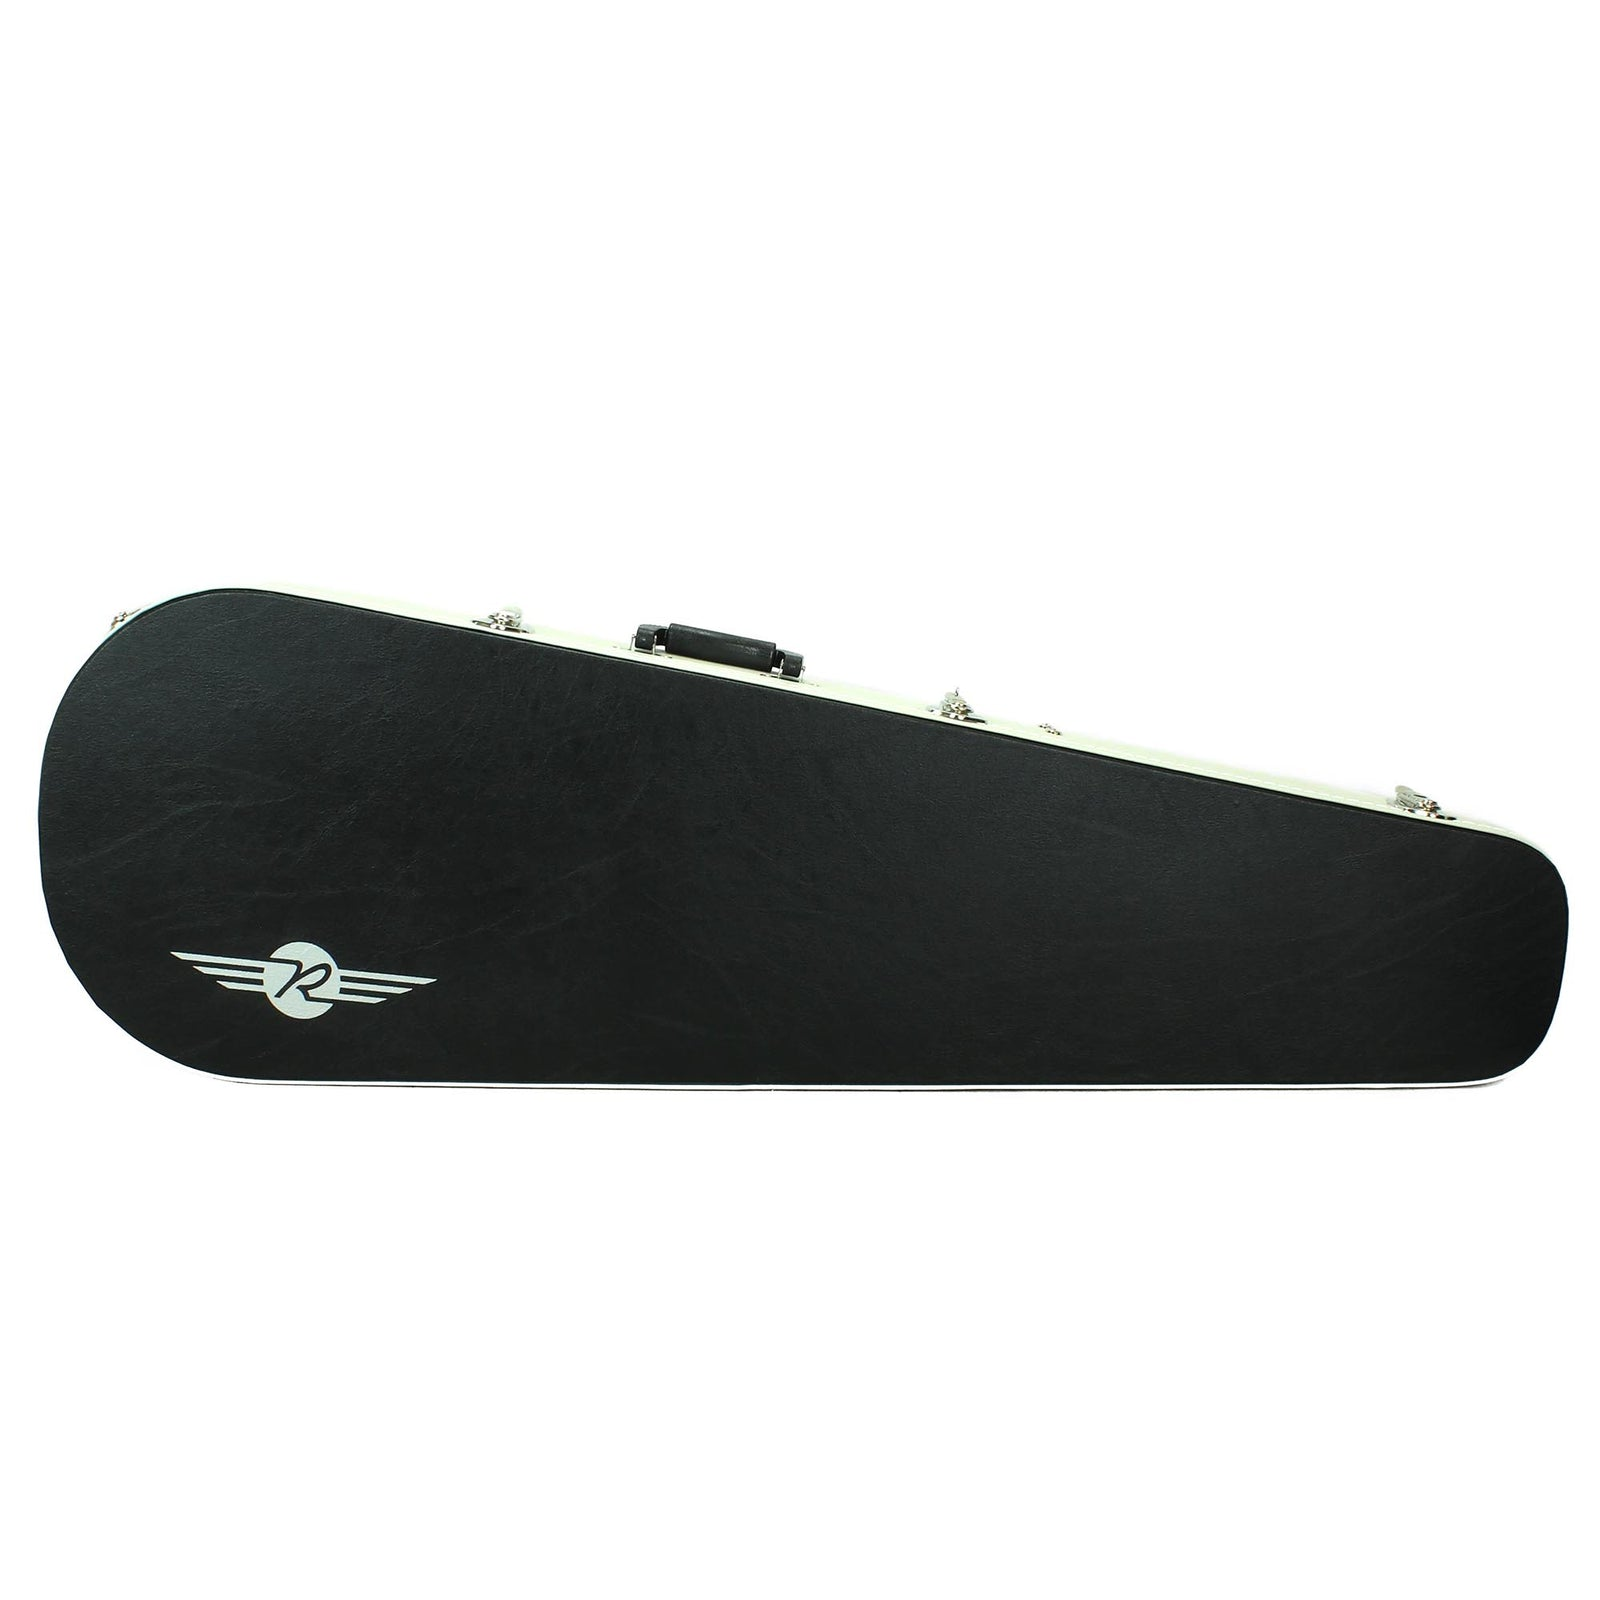 Reverend Two-Tone Premium Baritone Guitar Case